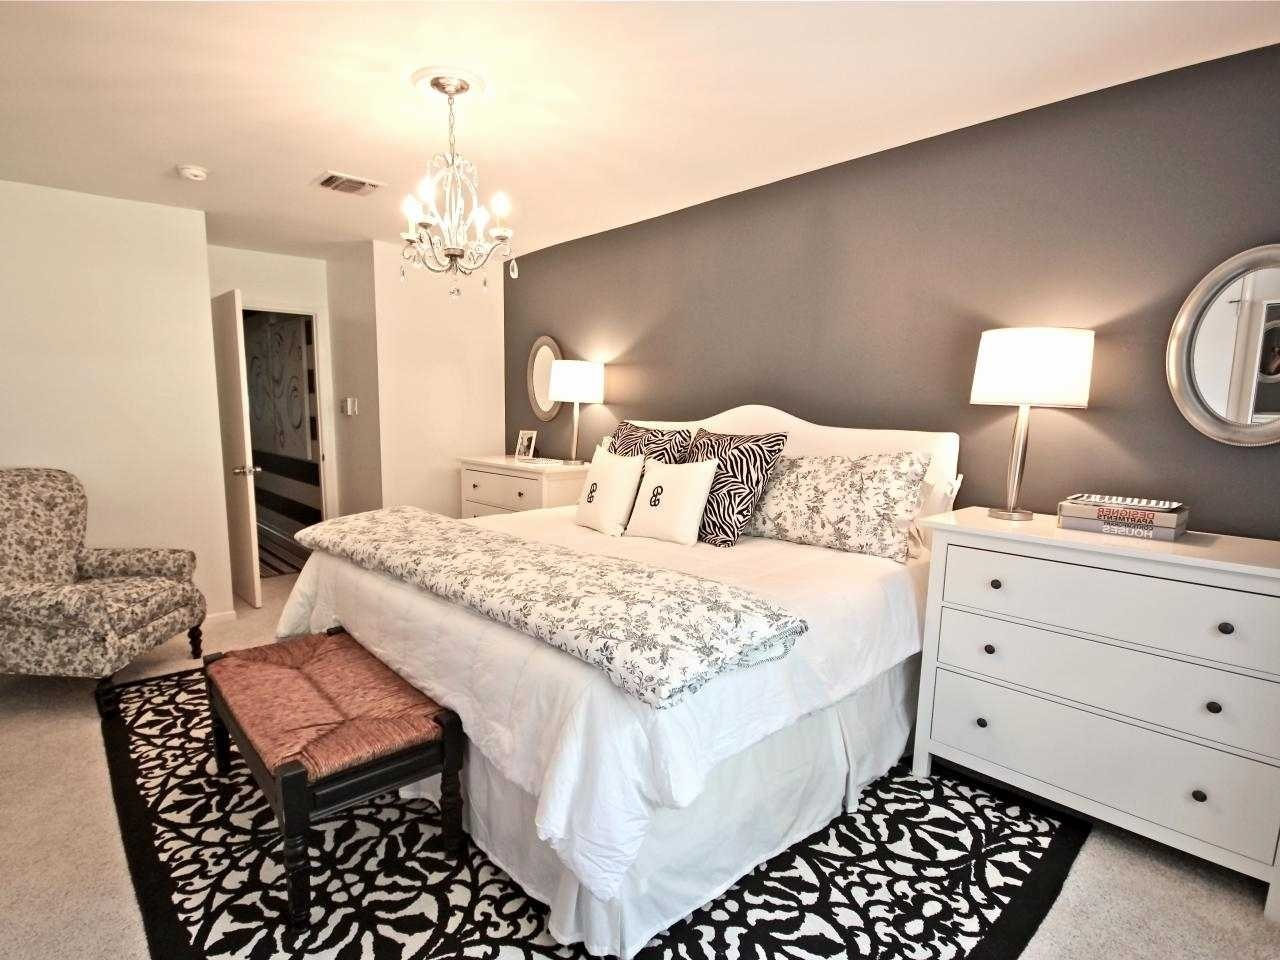 10 Beautiful Master Bedroom Ideas On A Budget fabulous master bedroom ideas for a small room trends also budget 2020